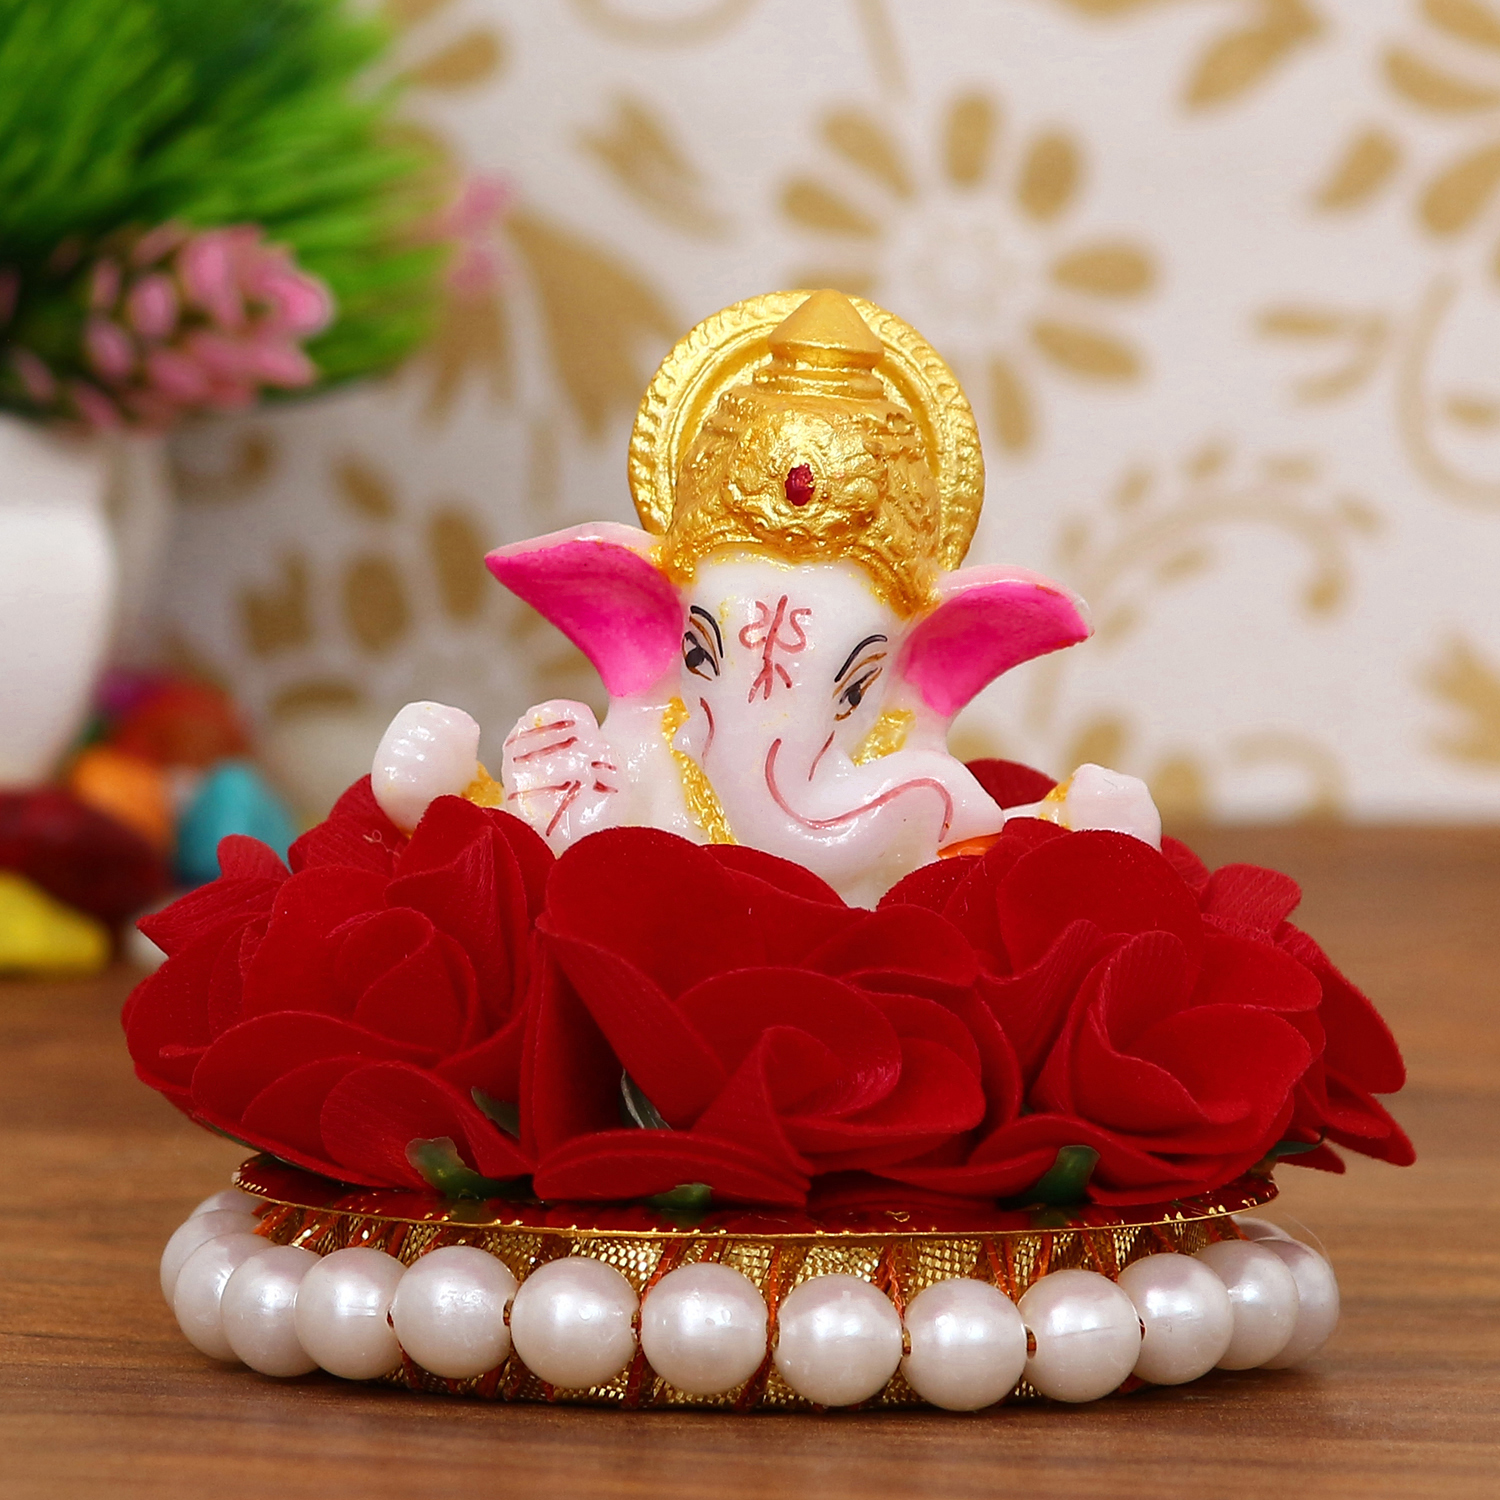 Lord Ganesha Idol on Decorative Handcrafted Plate with Red Flowers Indian Home Decor